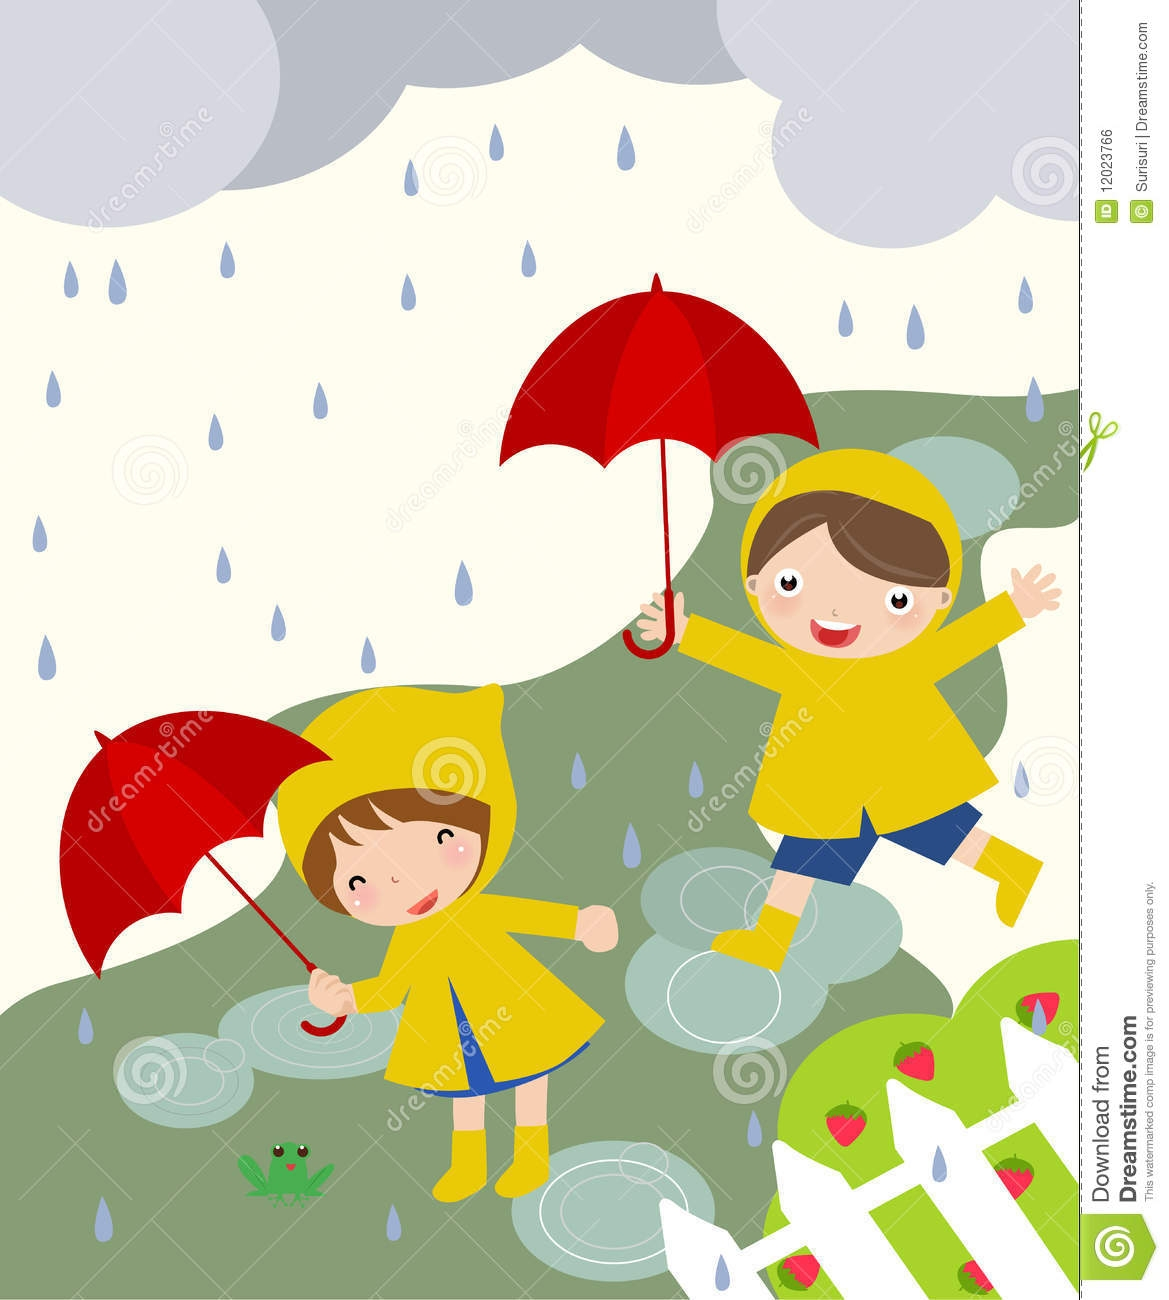 Children Playing In The Rain Clipart.